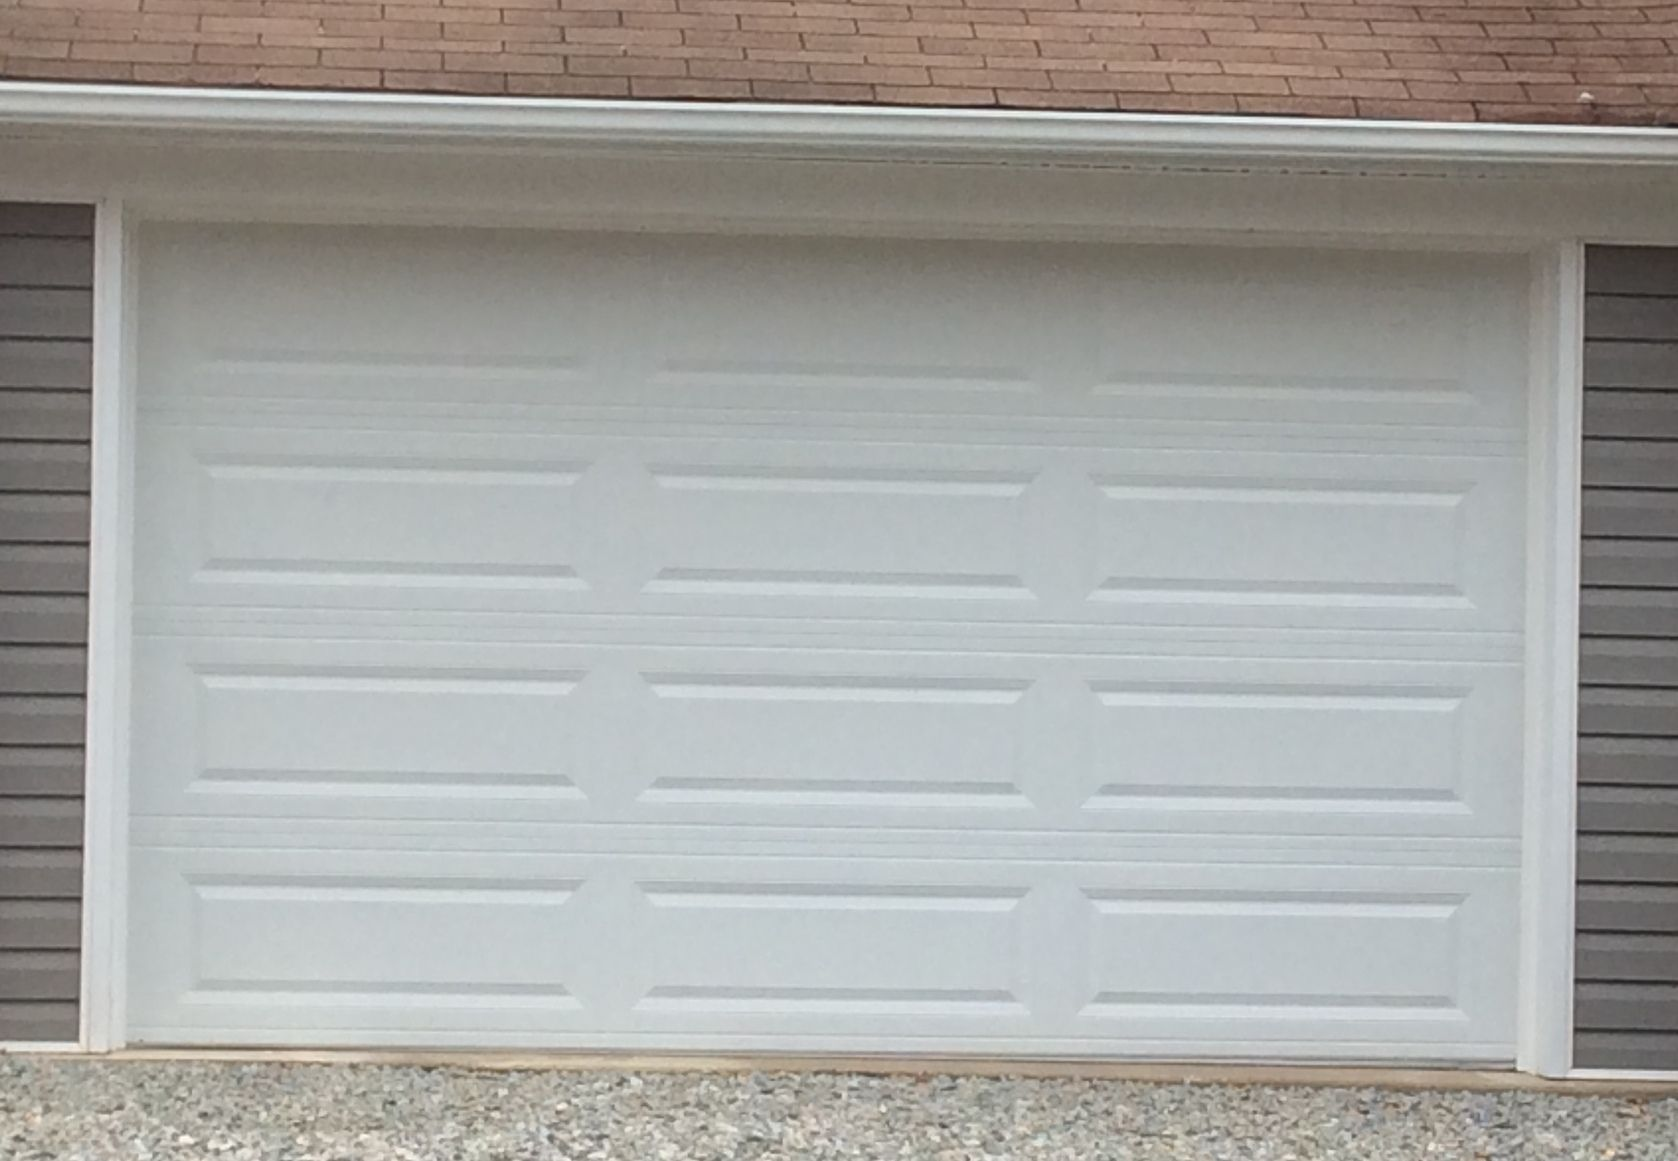 12x7 Model 4251 Raised Long Panel Steel Garage Door Installed By The Richmond Store Door Installation Garage Door Panels Steel Garage Doors